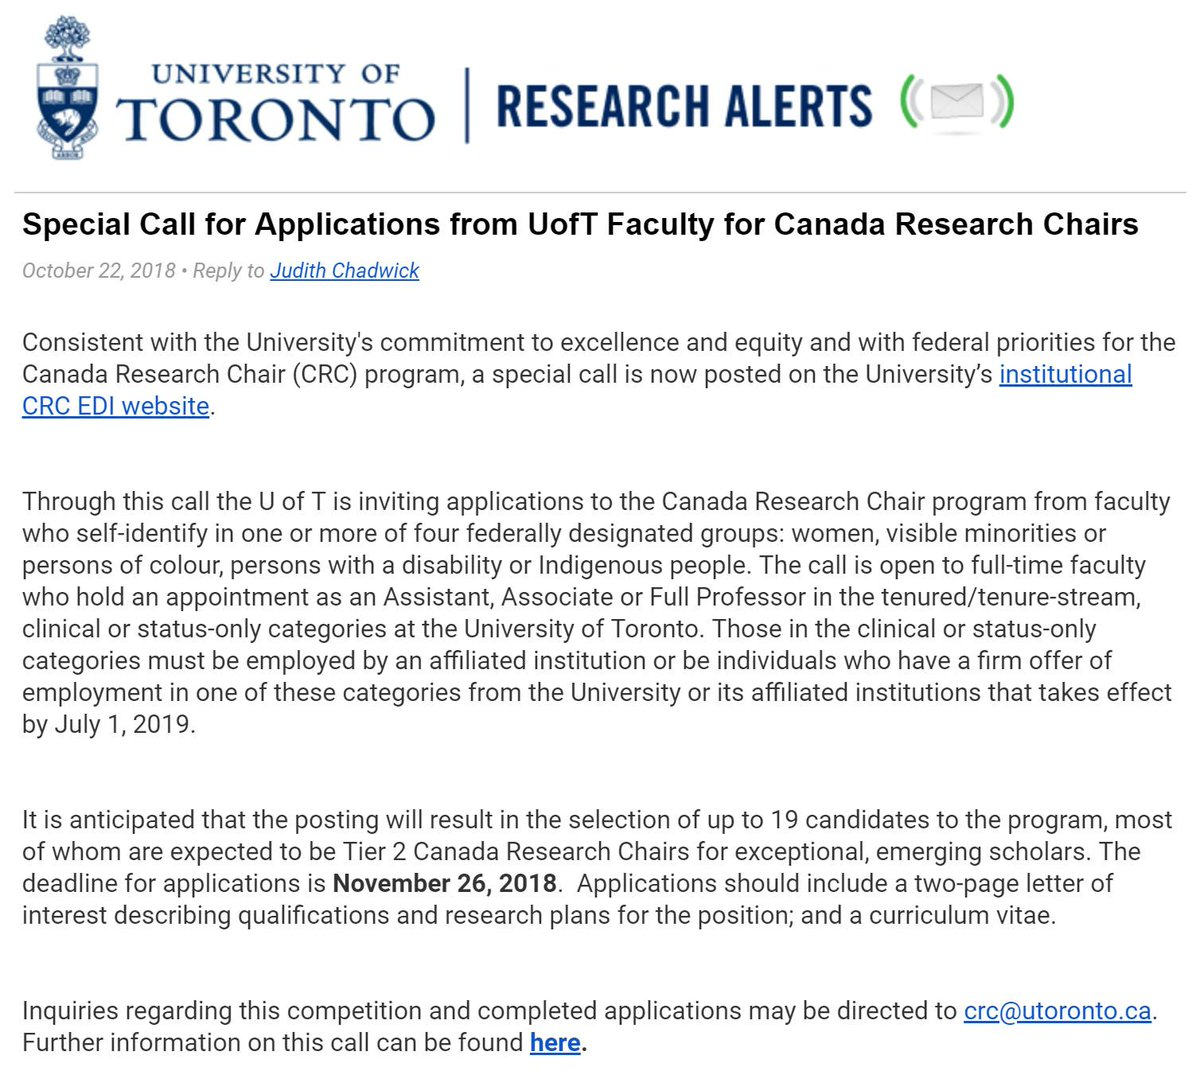 Program originally designed to attract the best scientists from around the world, bar none, to Canada: